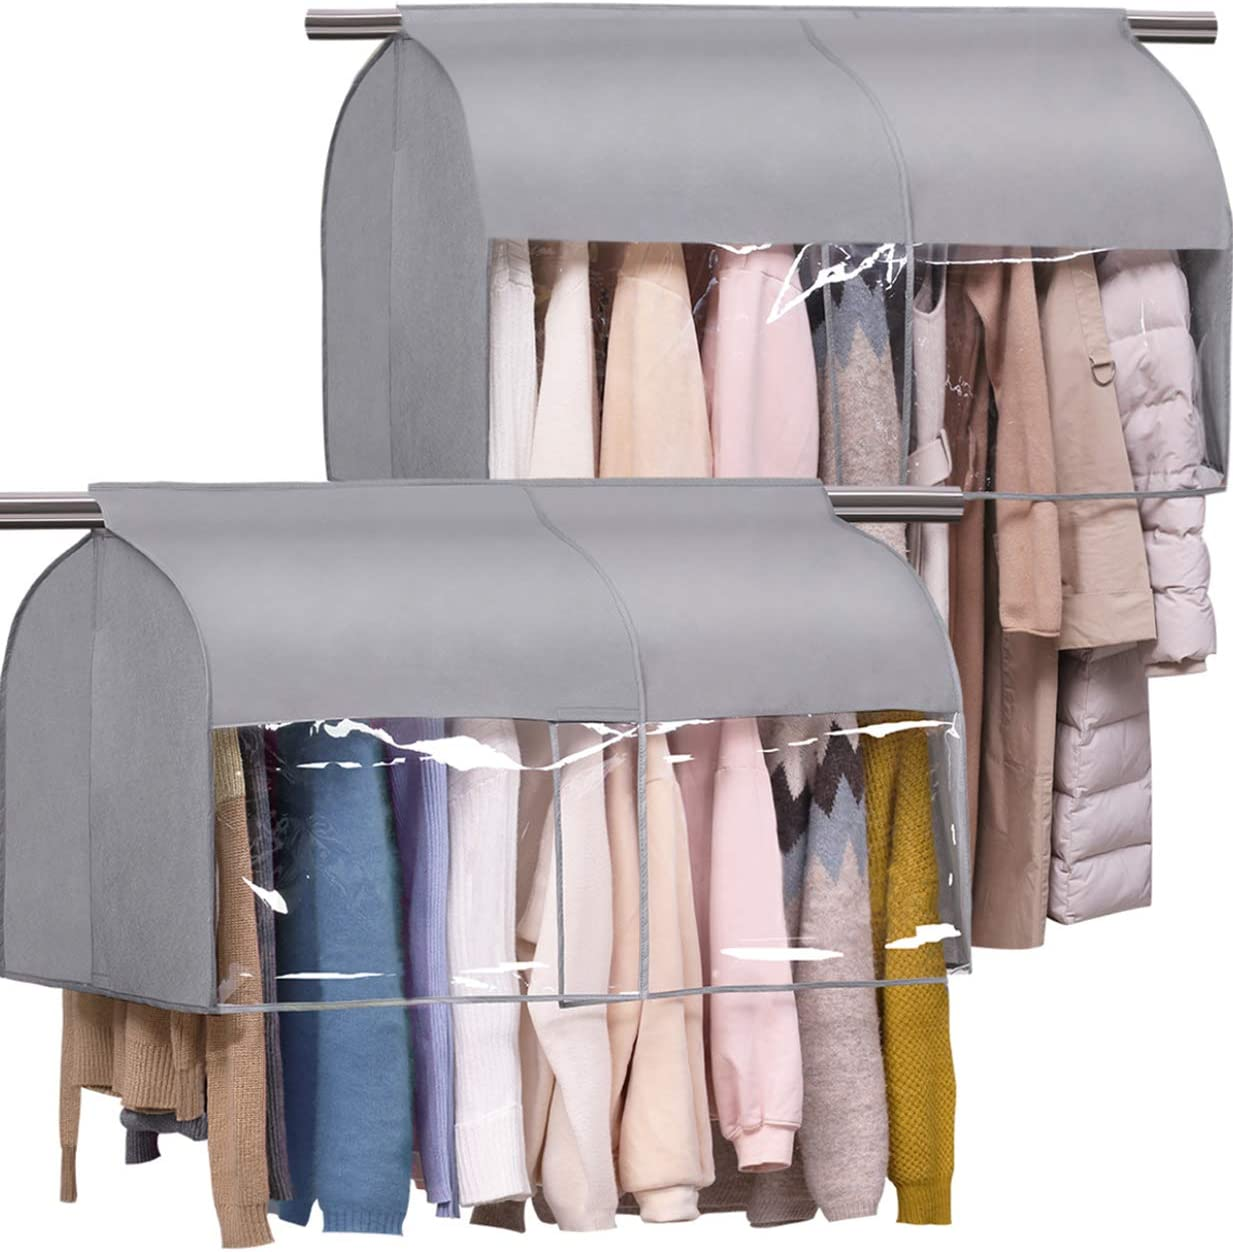 SLEEPING LAMB Hanging Closet Cover for Clothes Storage Expandable Garment Rack Cover with Clear PCV Window Dust Shoulder Cover Protector for Suit Coat Jacket, 2 Packs, Grey